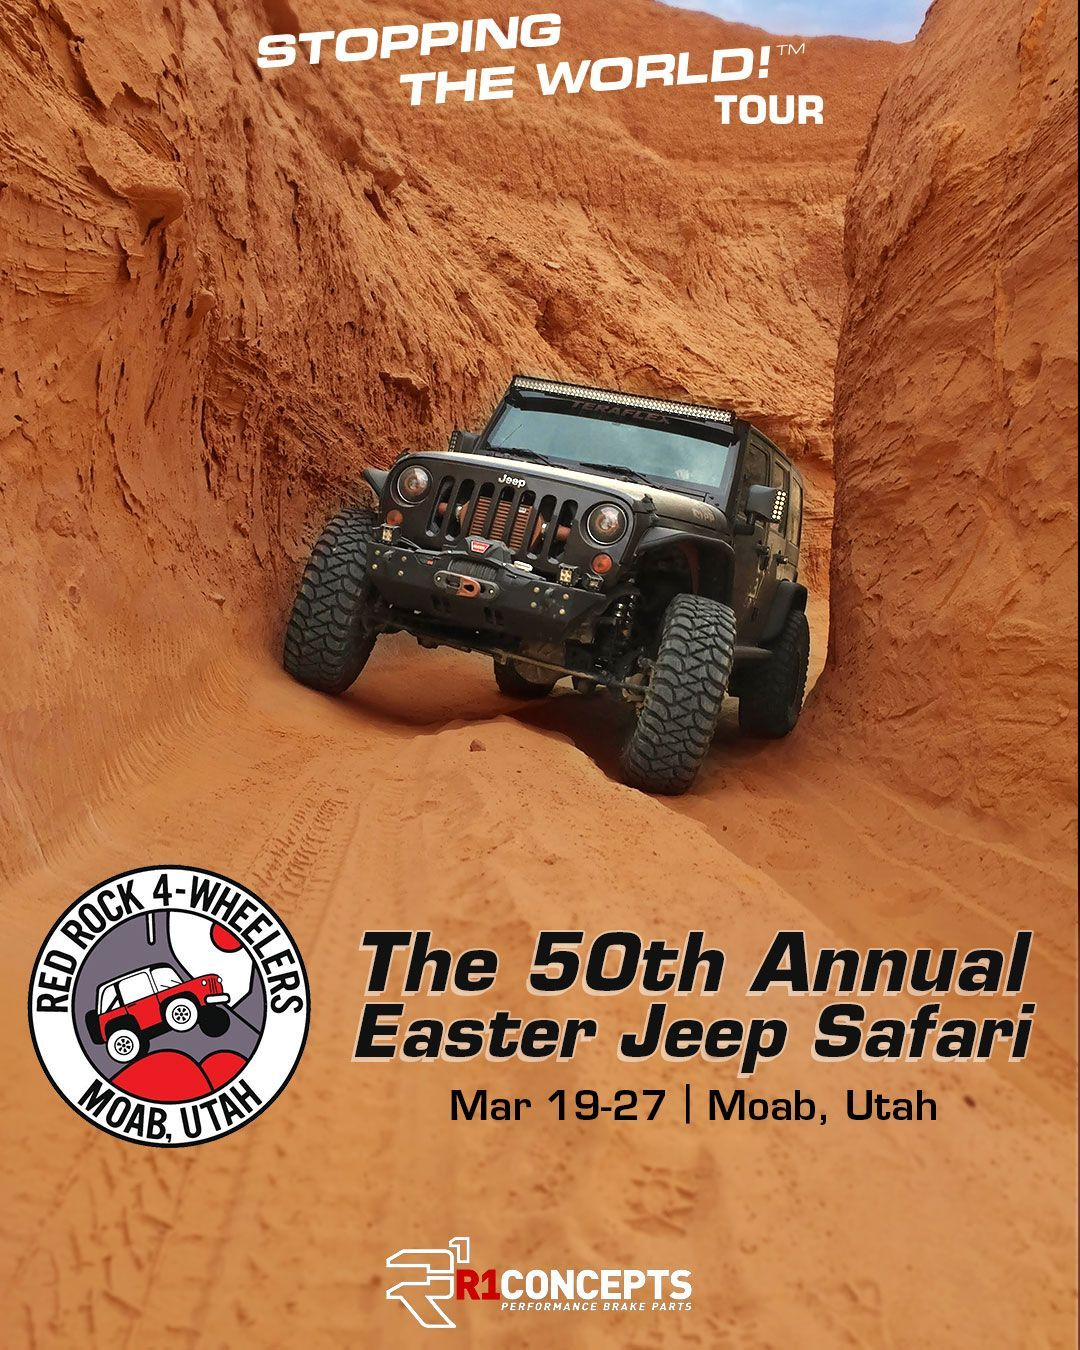 Moab Red Rock 4wheelers Easter Jeep Safari Flyer 2016